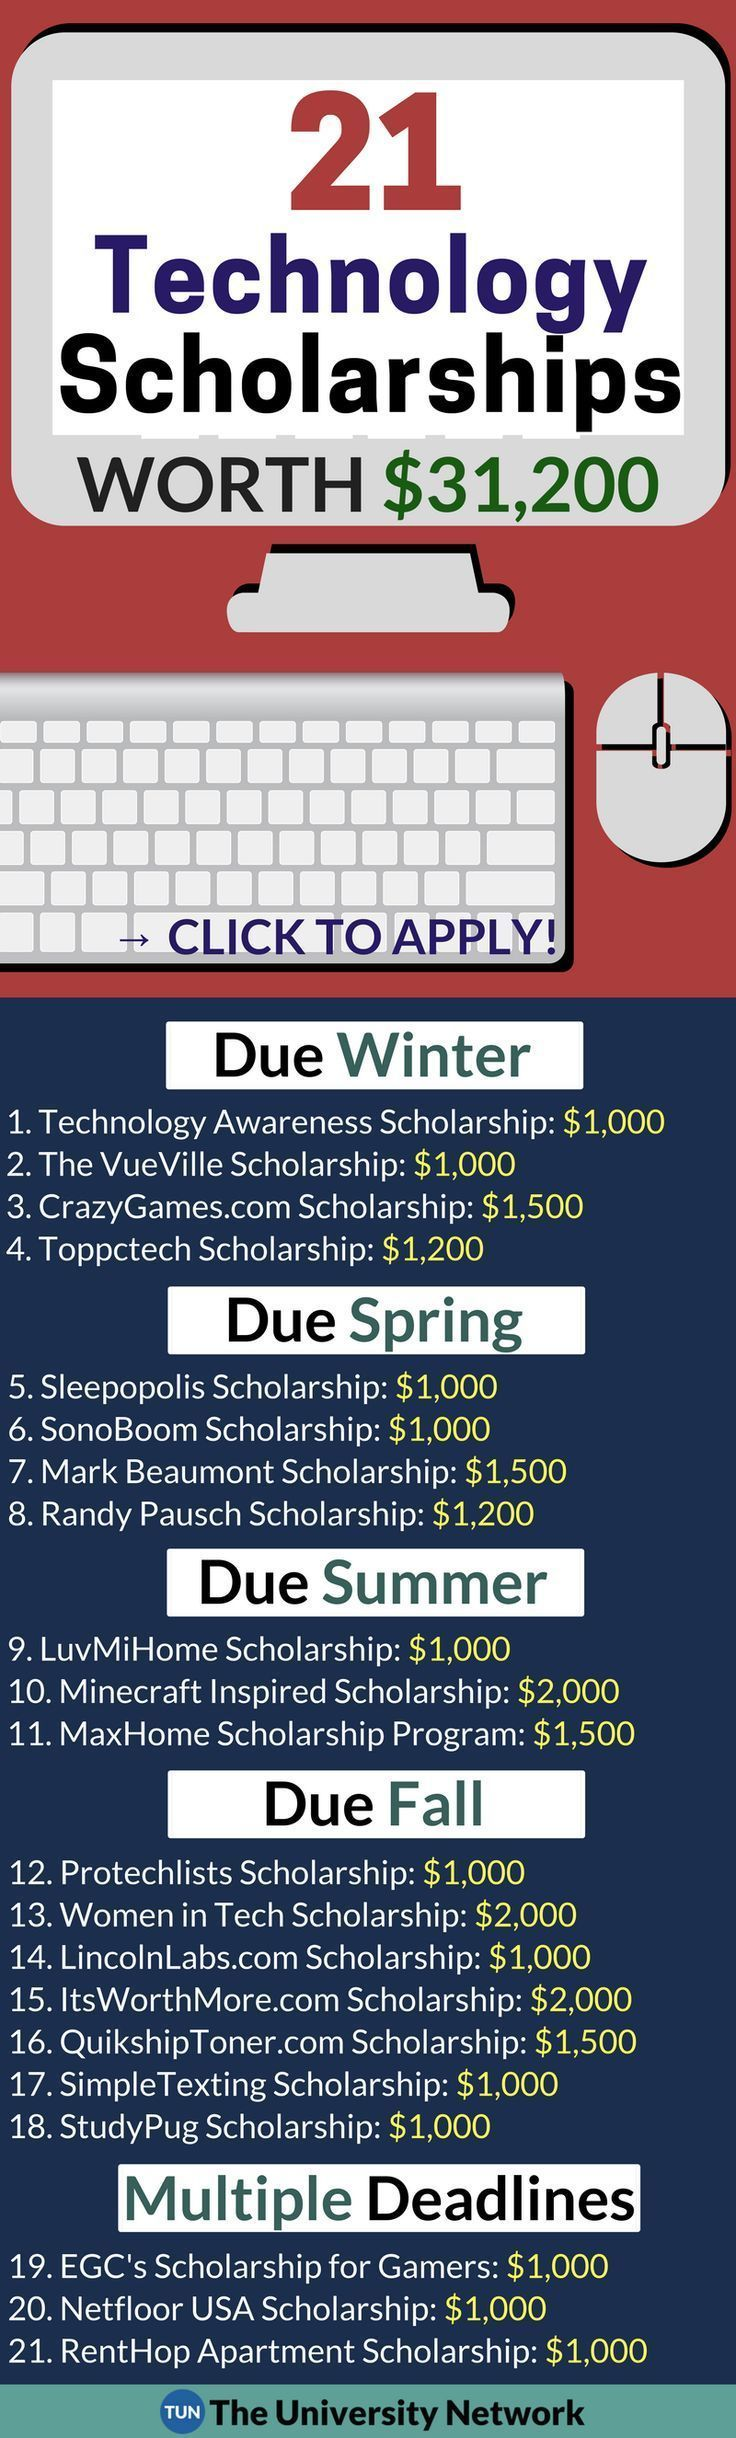 All these scholarships focus on technology. Some topics include technology��s effect on society, 3D printing, the internet, and gaming!